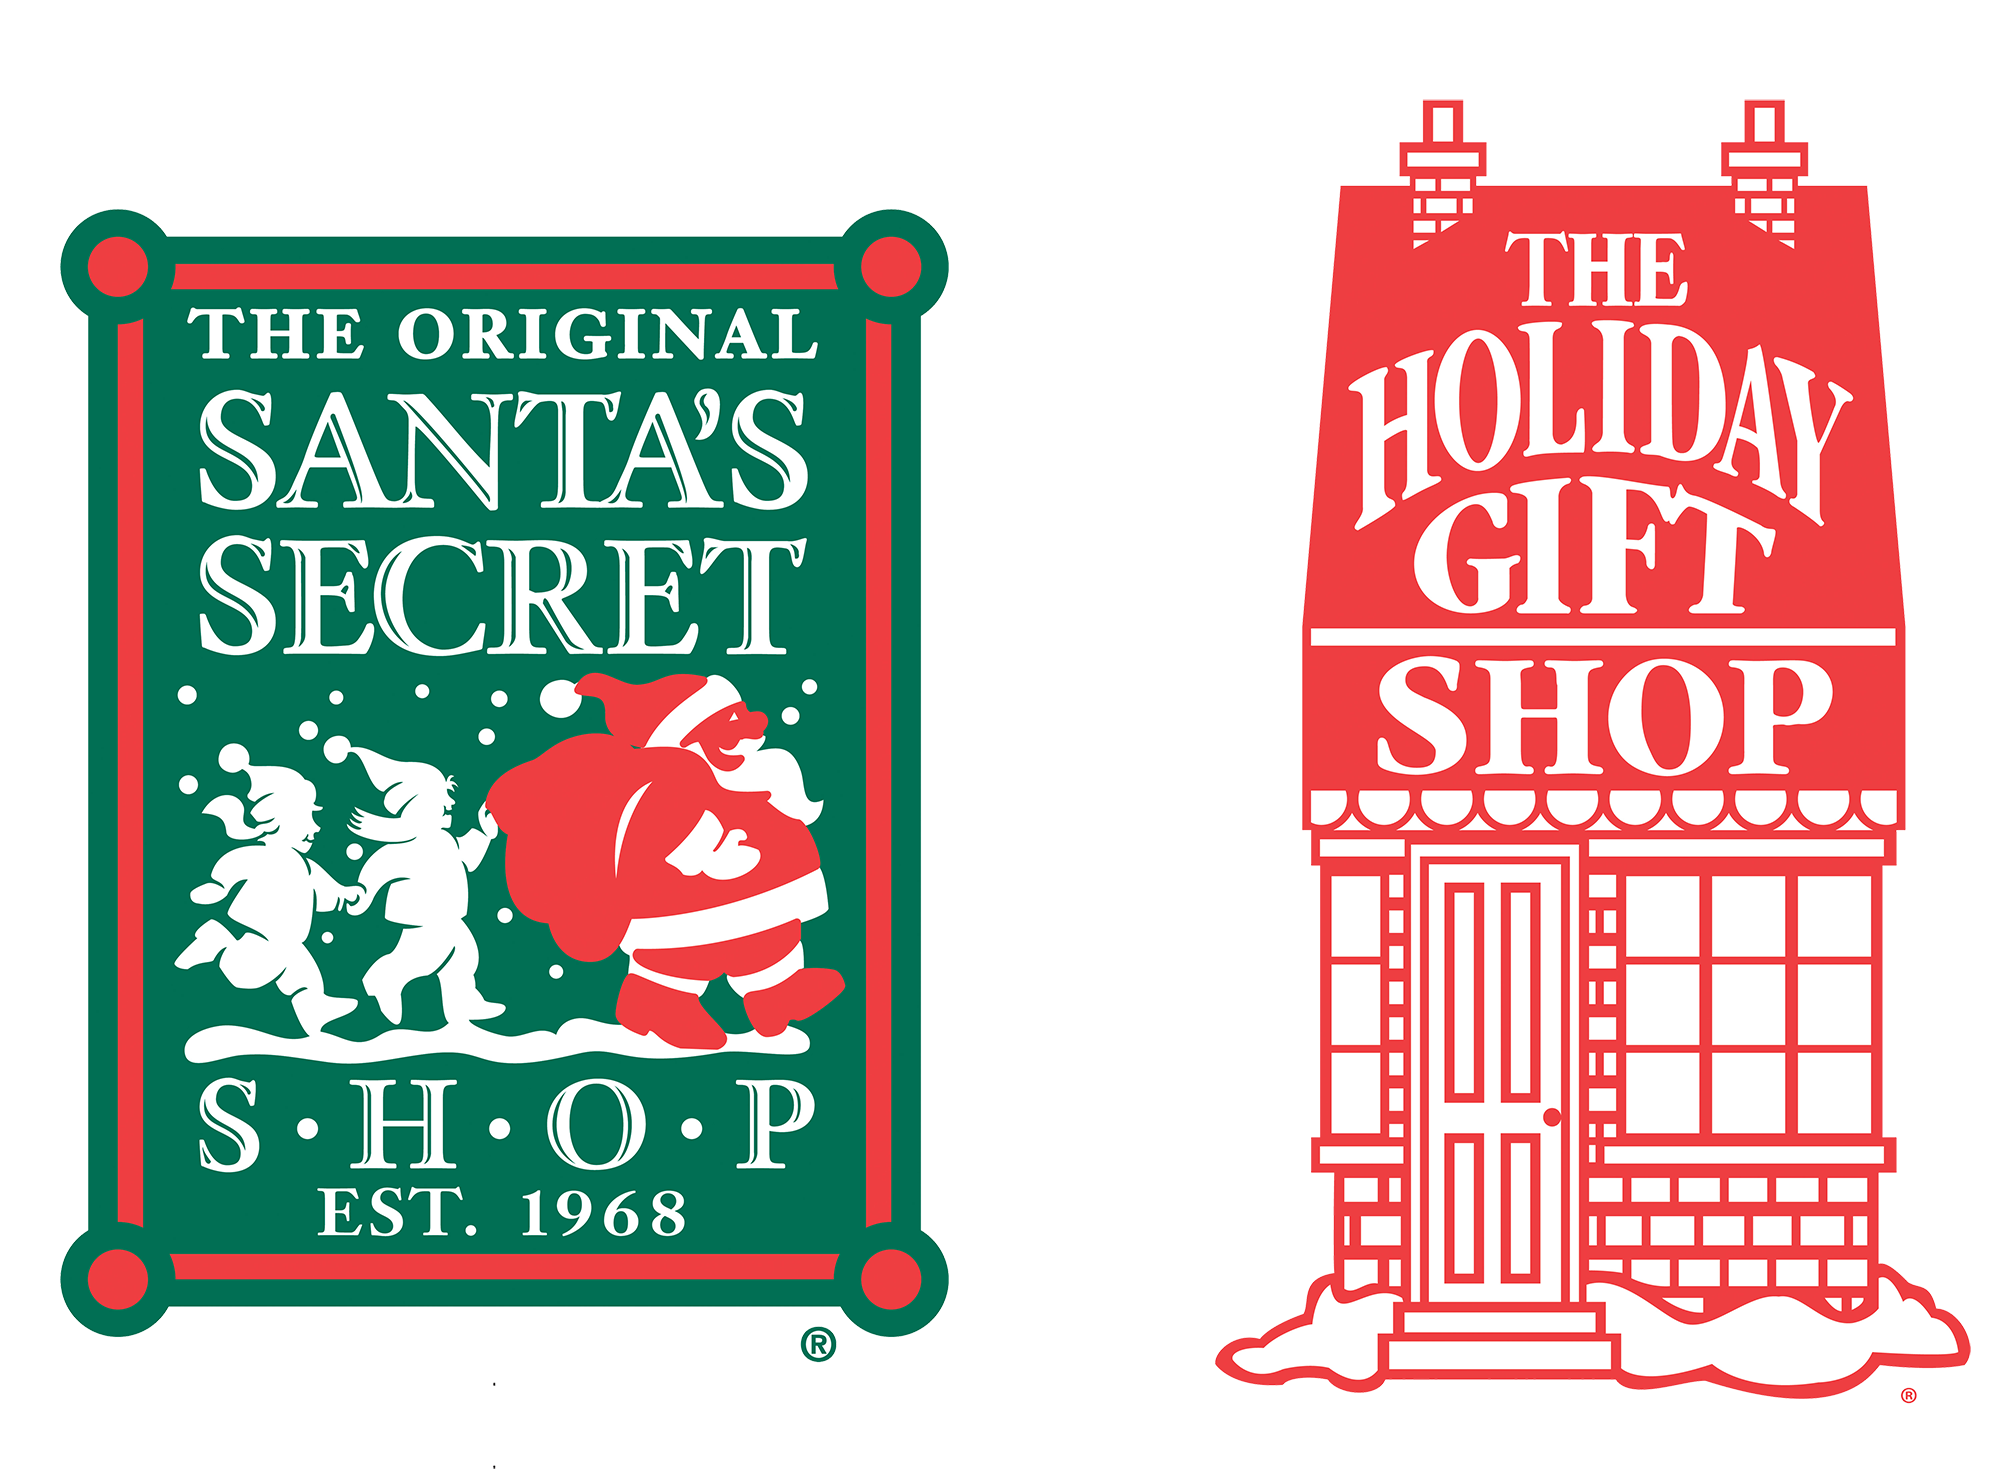 the original sanat's secret workshop and the holiday gift shop logos